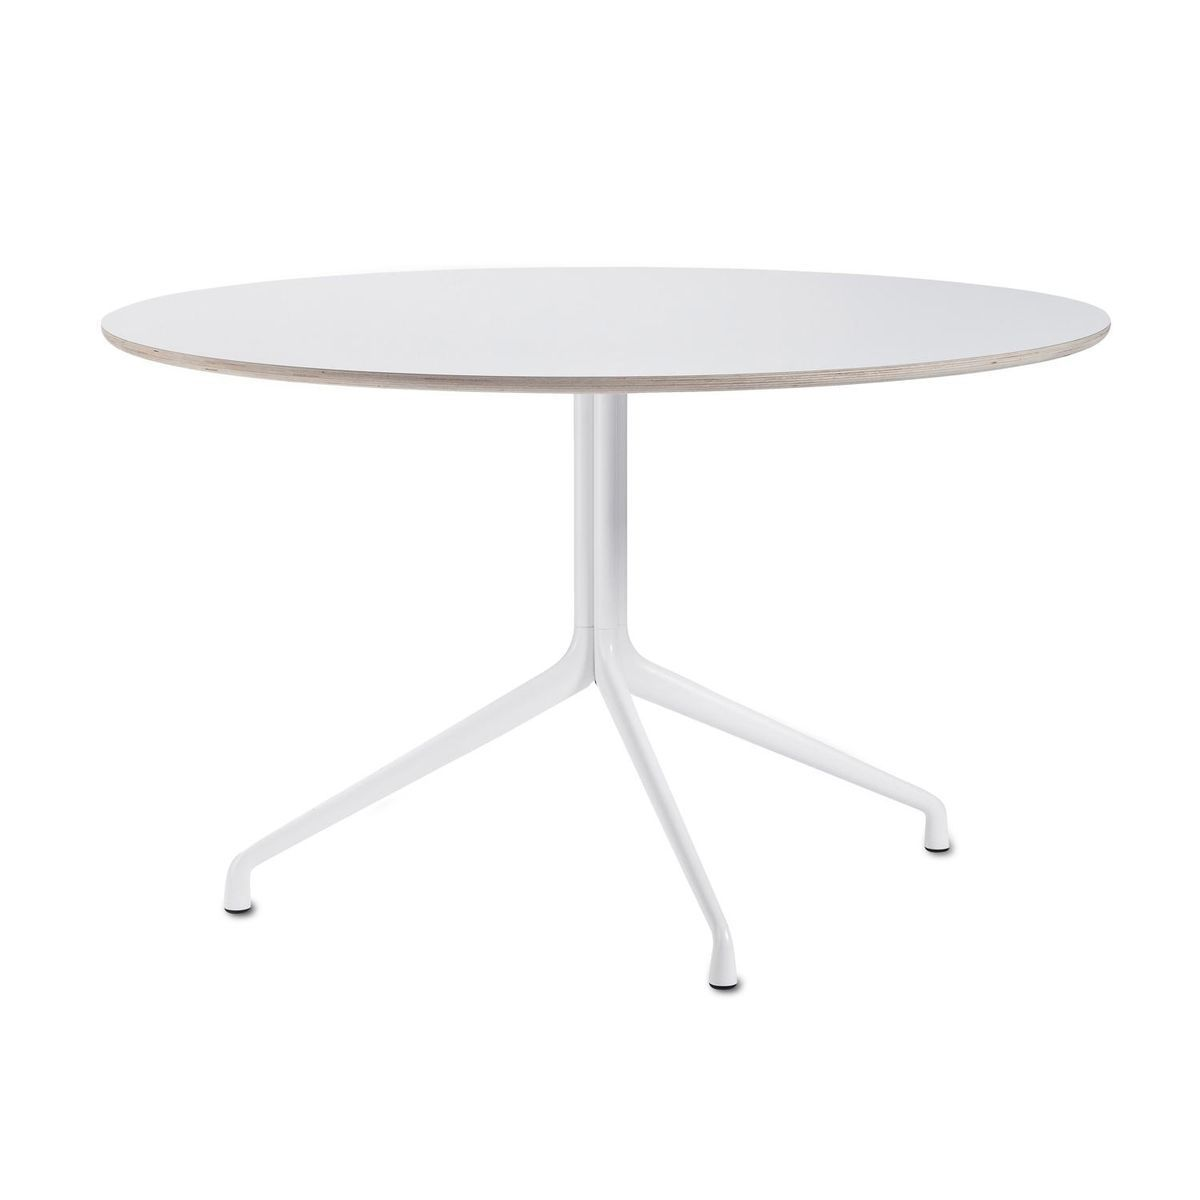 HAY   About A Table Dining Table Round Ø110cm   White/table Top Laminate/